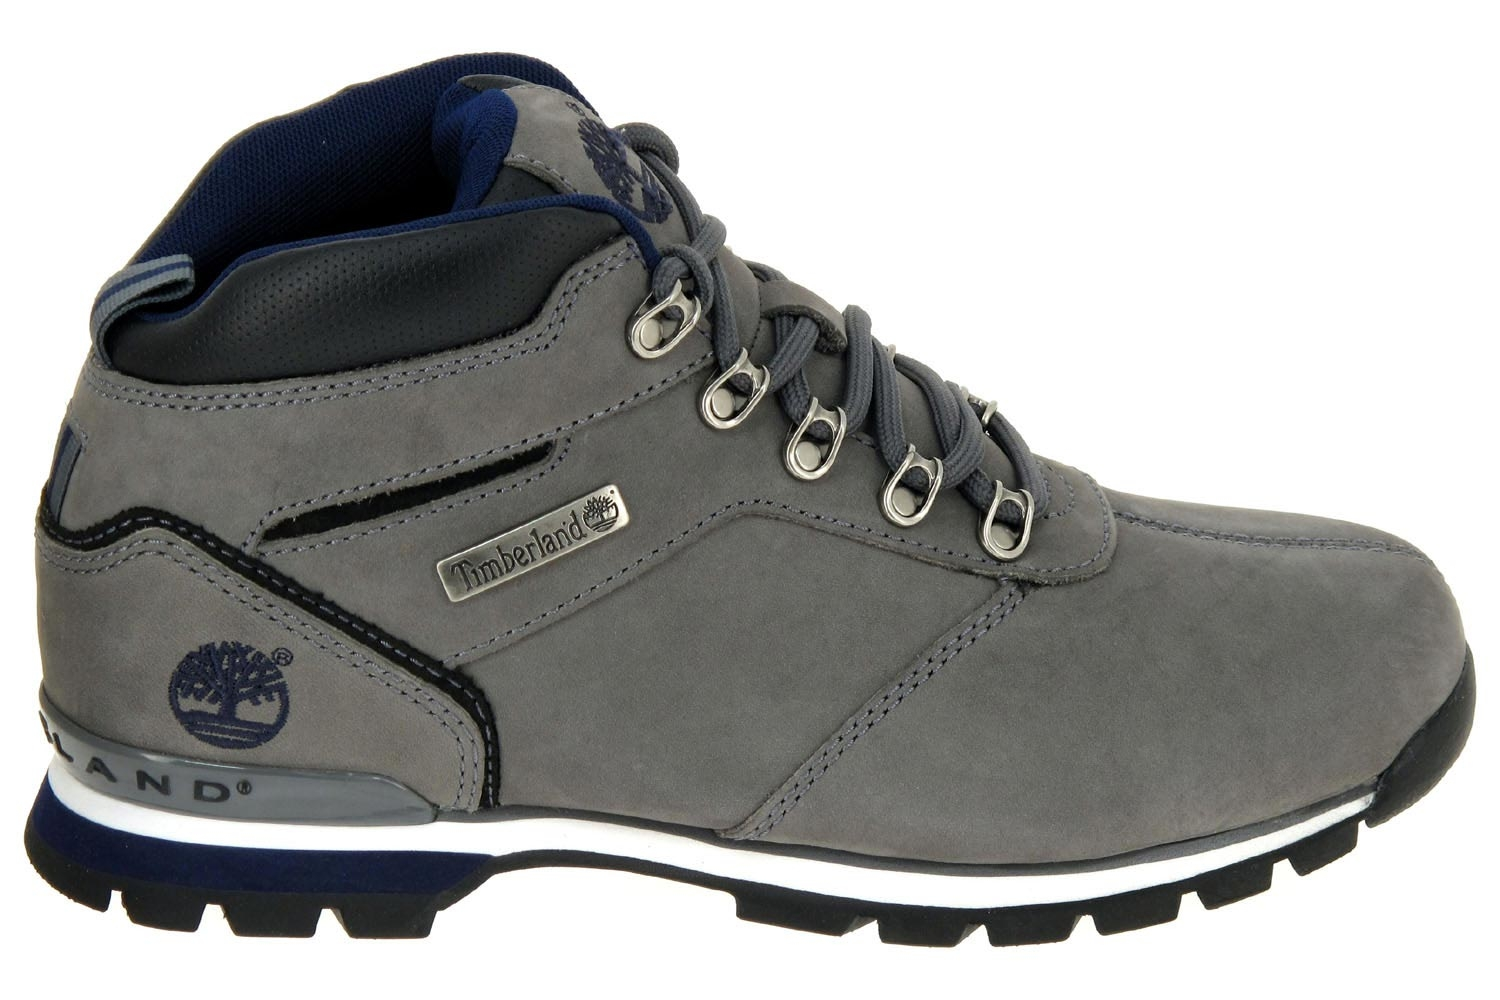 timberland chaussure homme grise